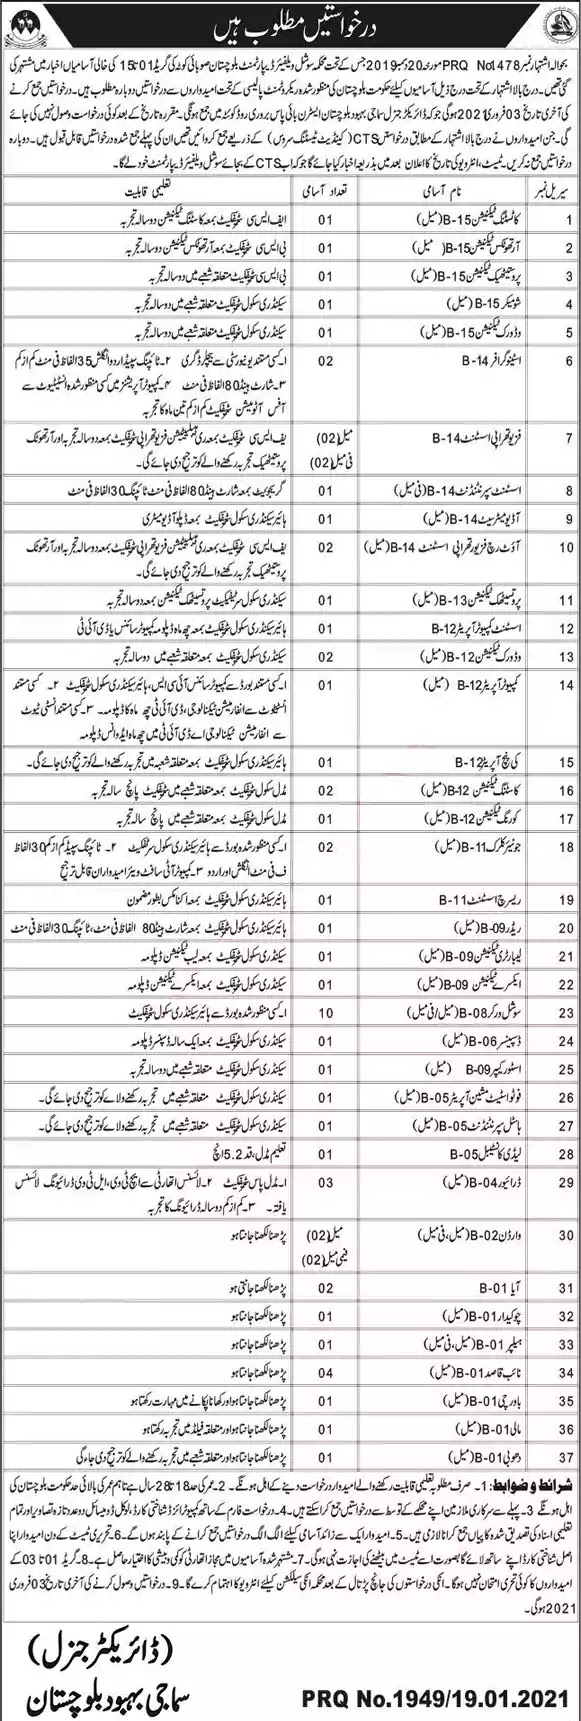 Govt Jobs in Social Welfare Department Balochistan Jobs 2021 Medical Technicians, Social Workers and Others Latest